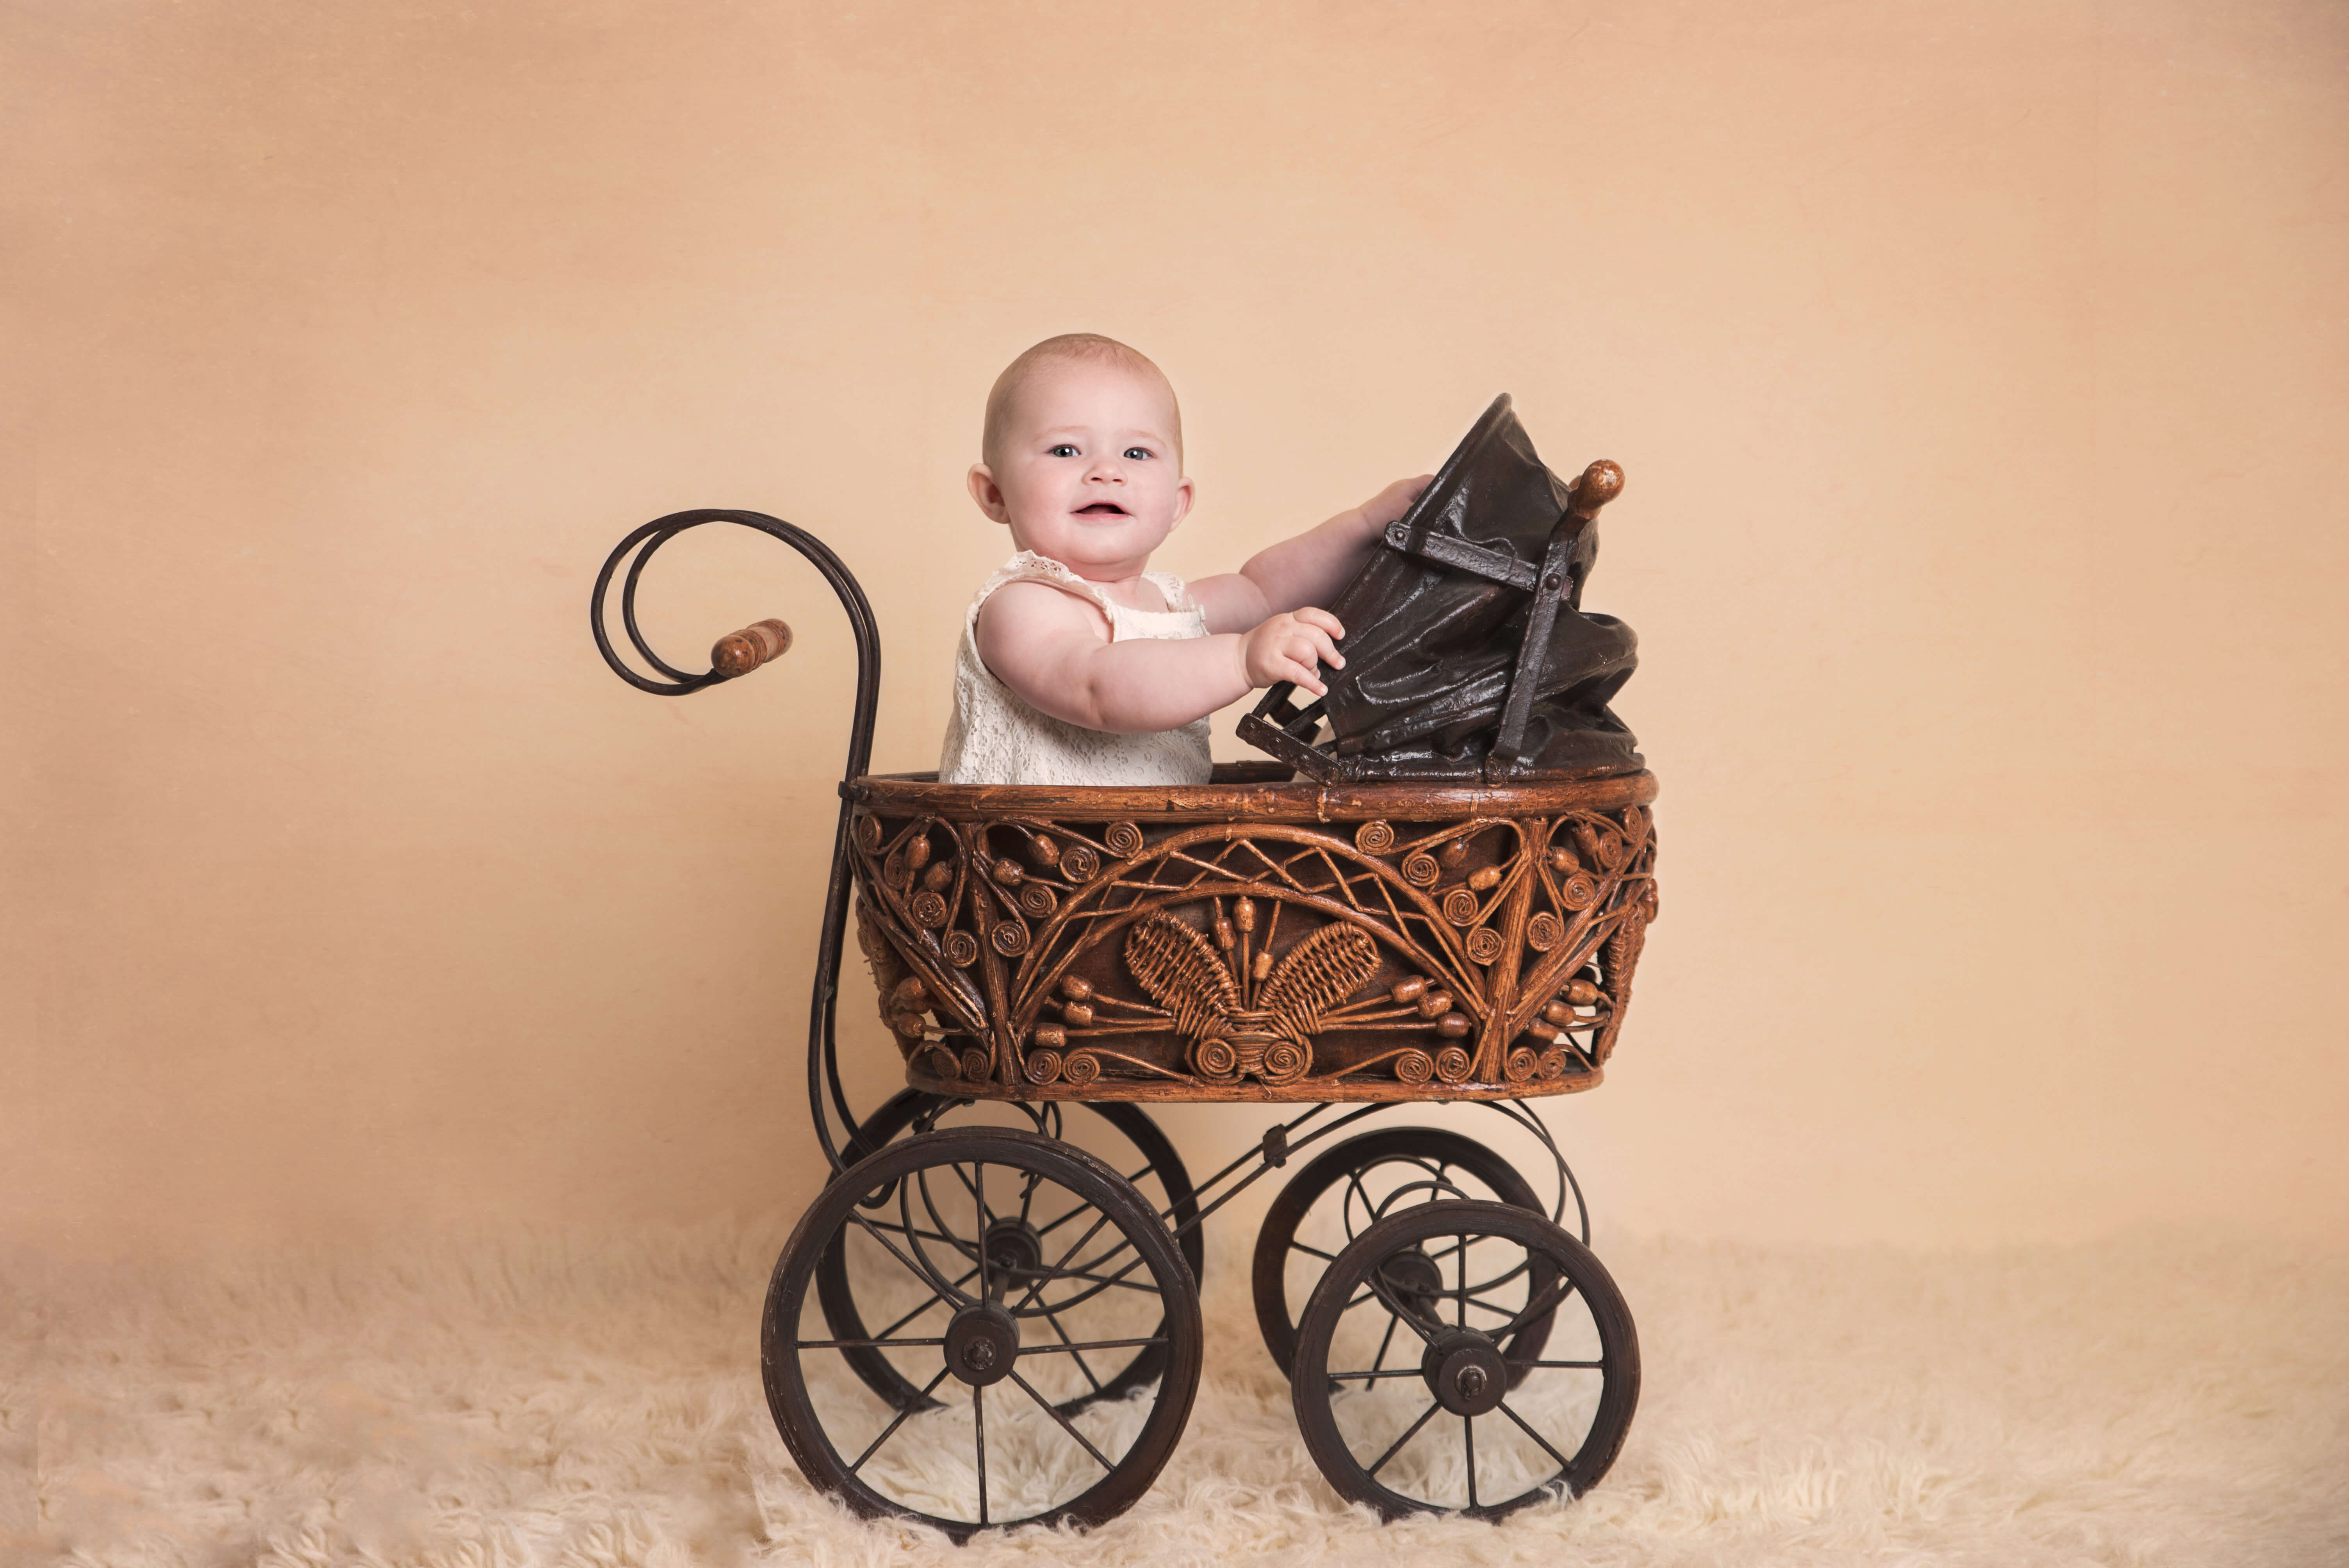 Slice of Life Little Sitters Session Gallery - Baby sat in a wicker pram, facing right